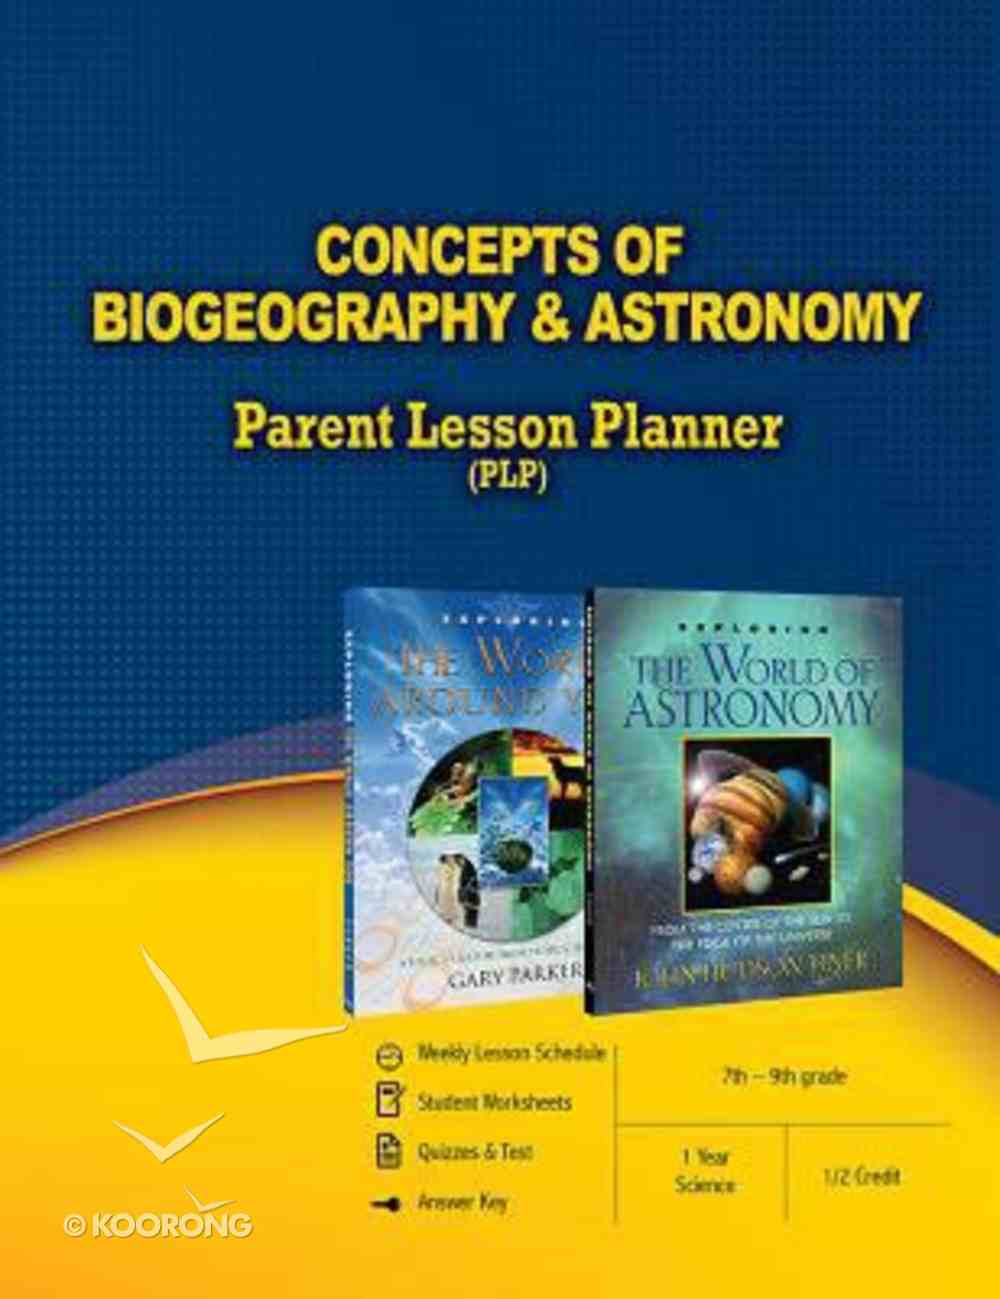 Concepts of Biogeography & Astronomy Parent Lesson Planner Paperback